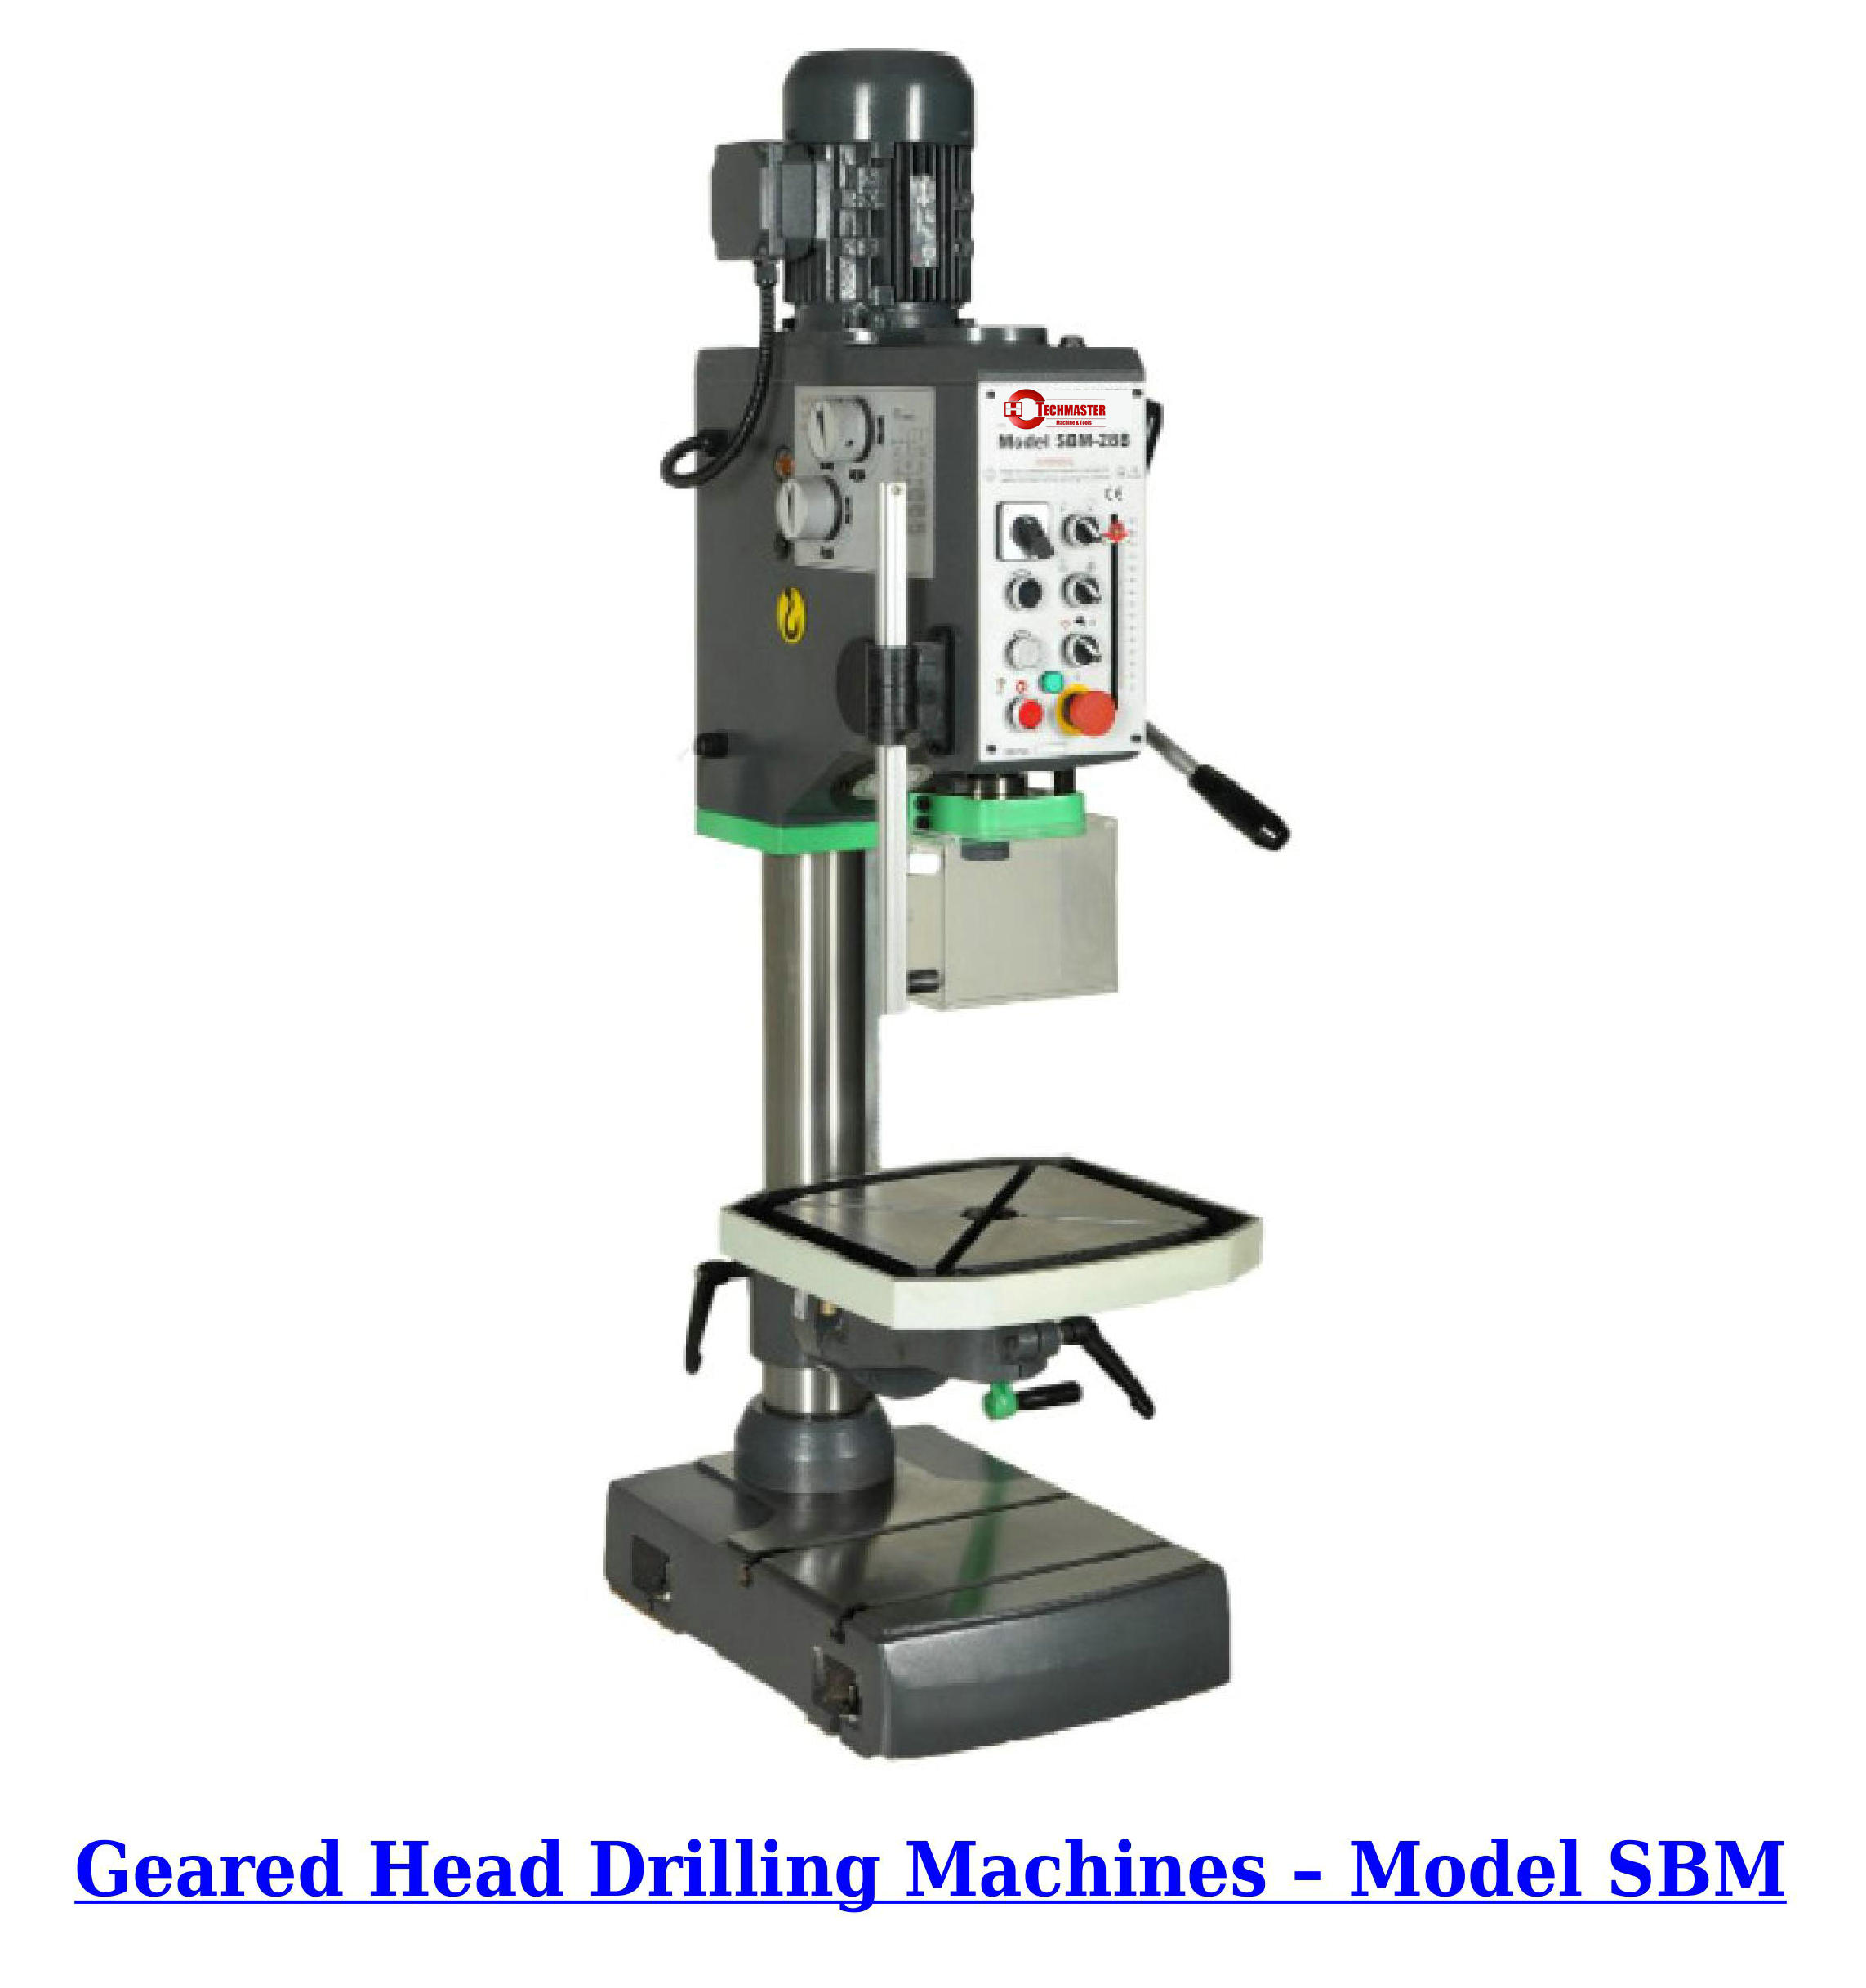 GEARED HEAD DRILLING MACHINE SBM-28B